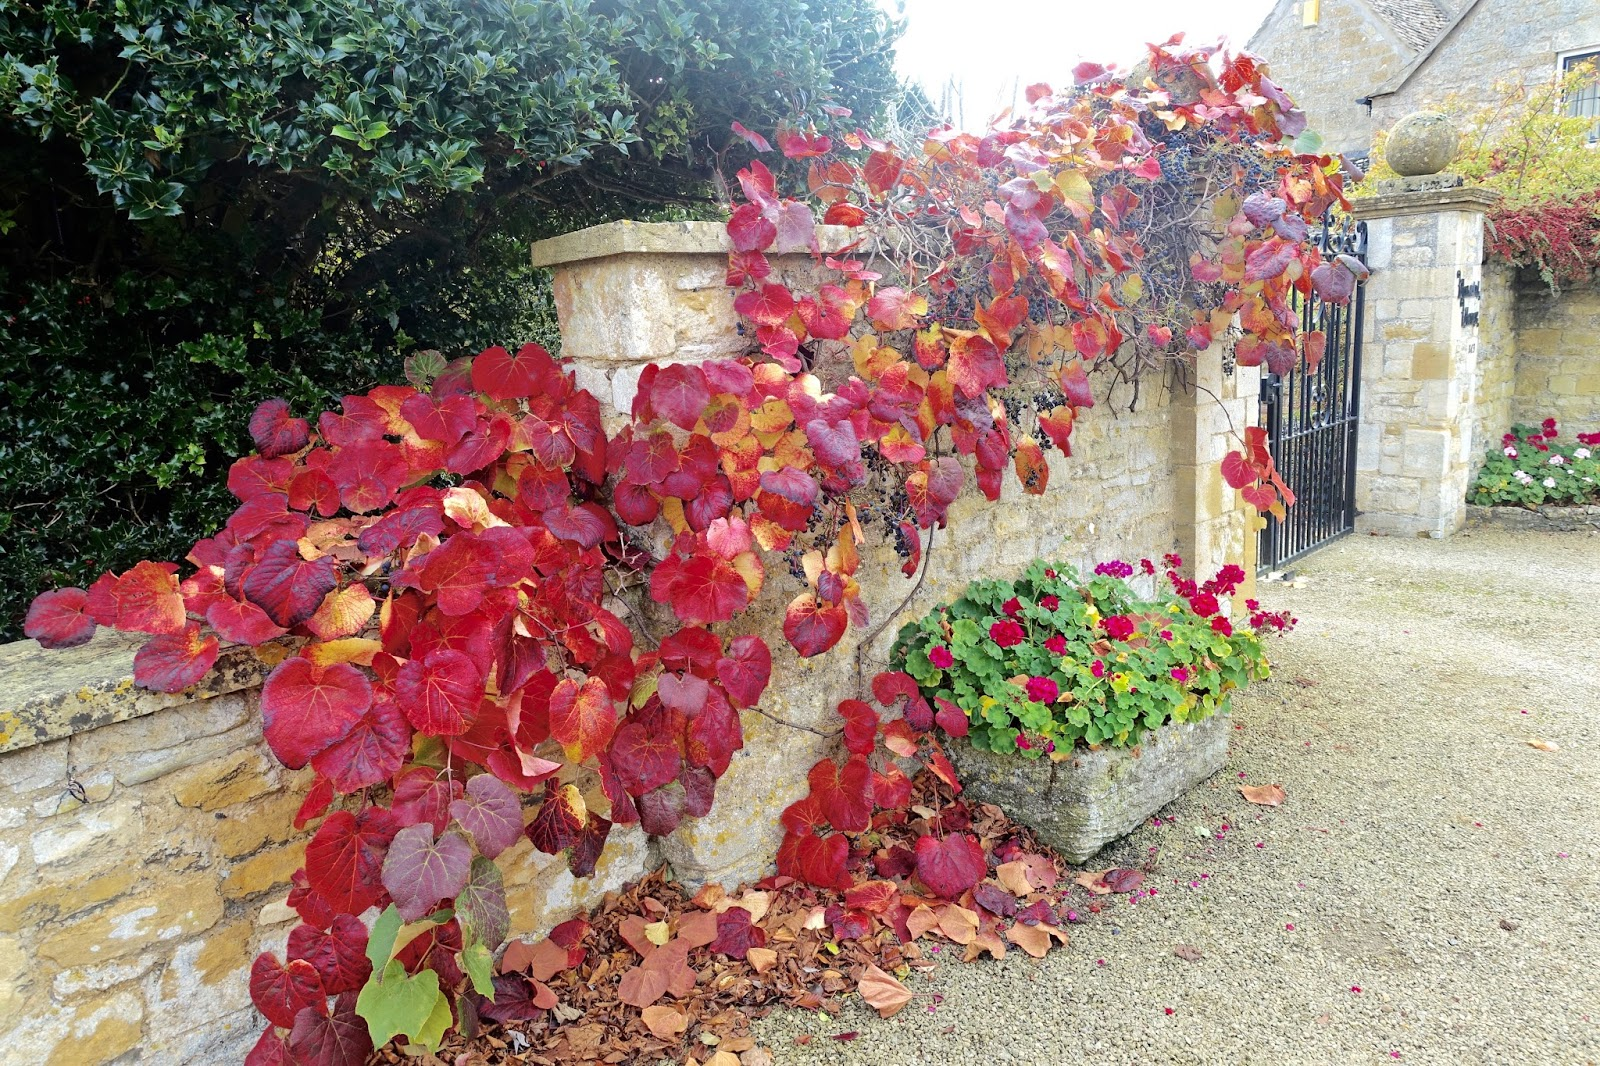 autumnal leaves in october